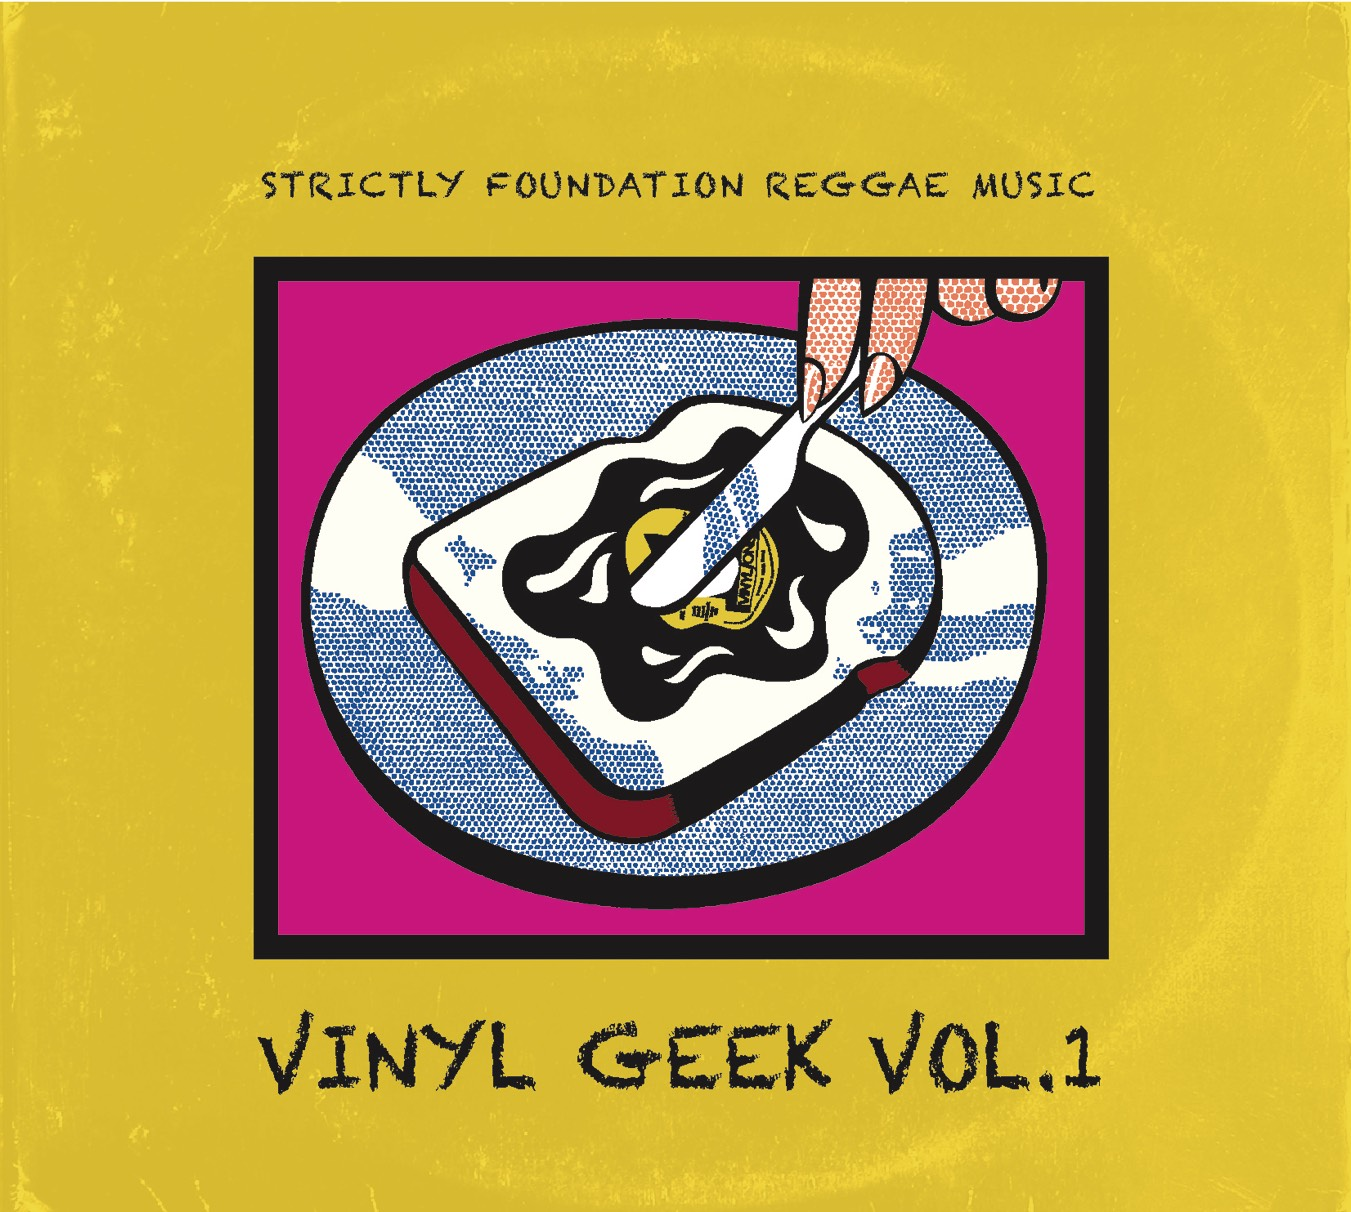 EMANUEL RECORDS (フランケン from Hot&Ice the Muzik/Out Of Babylons) / VINYL GEEK vol.1-strictly foundation reggae music-